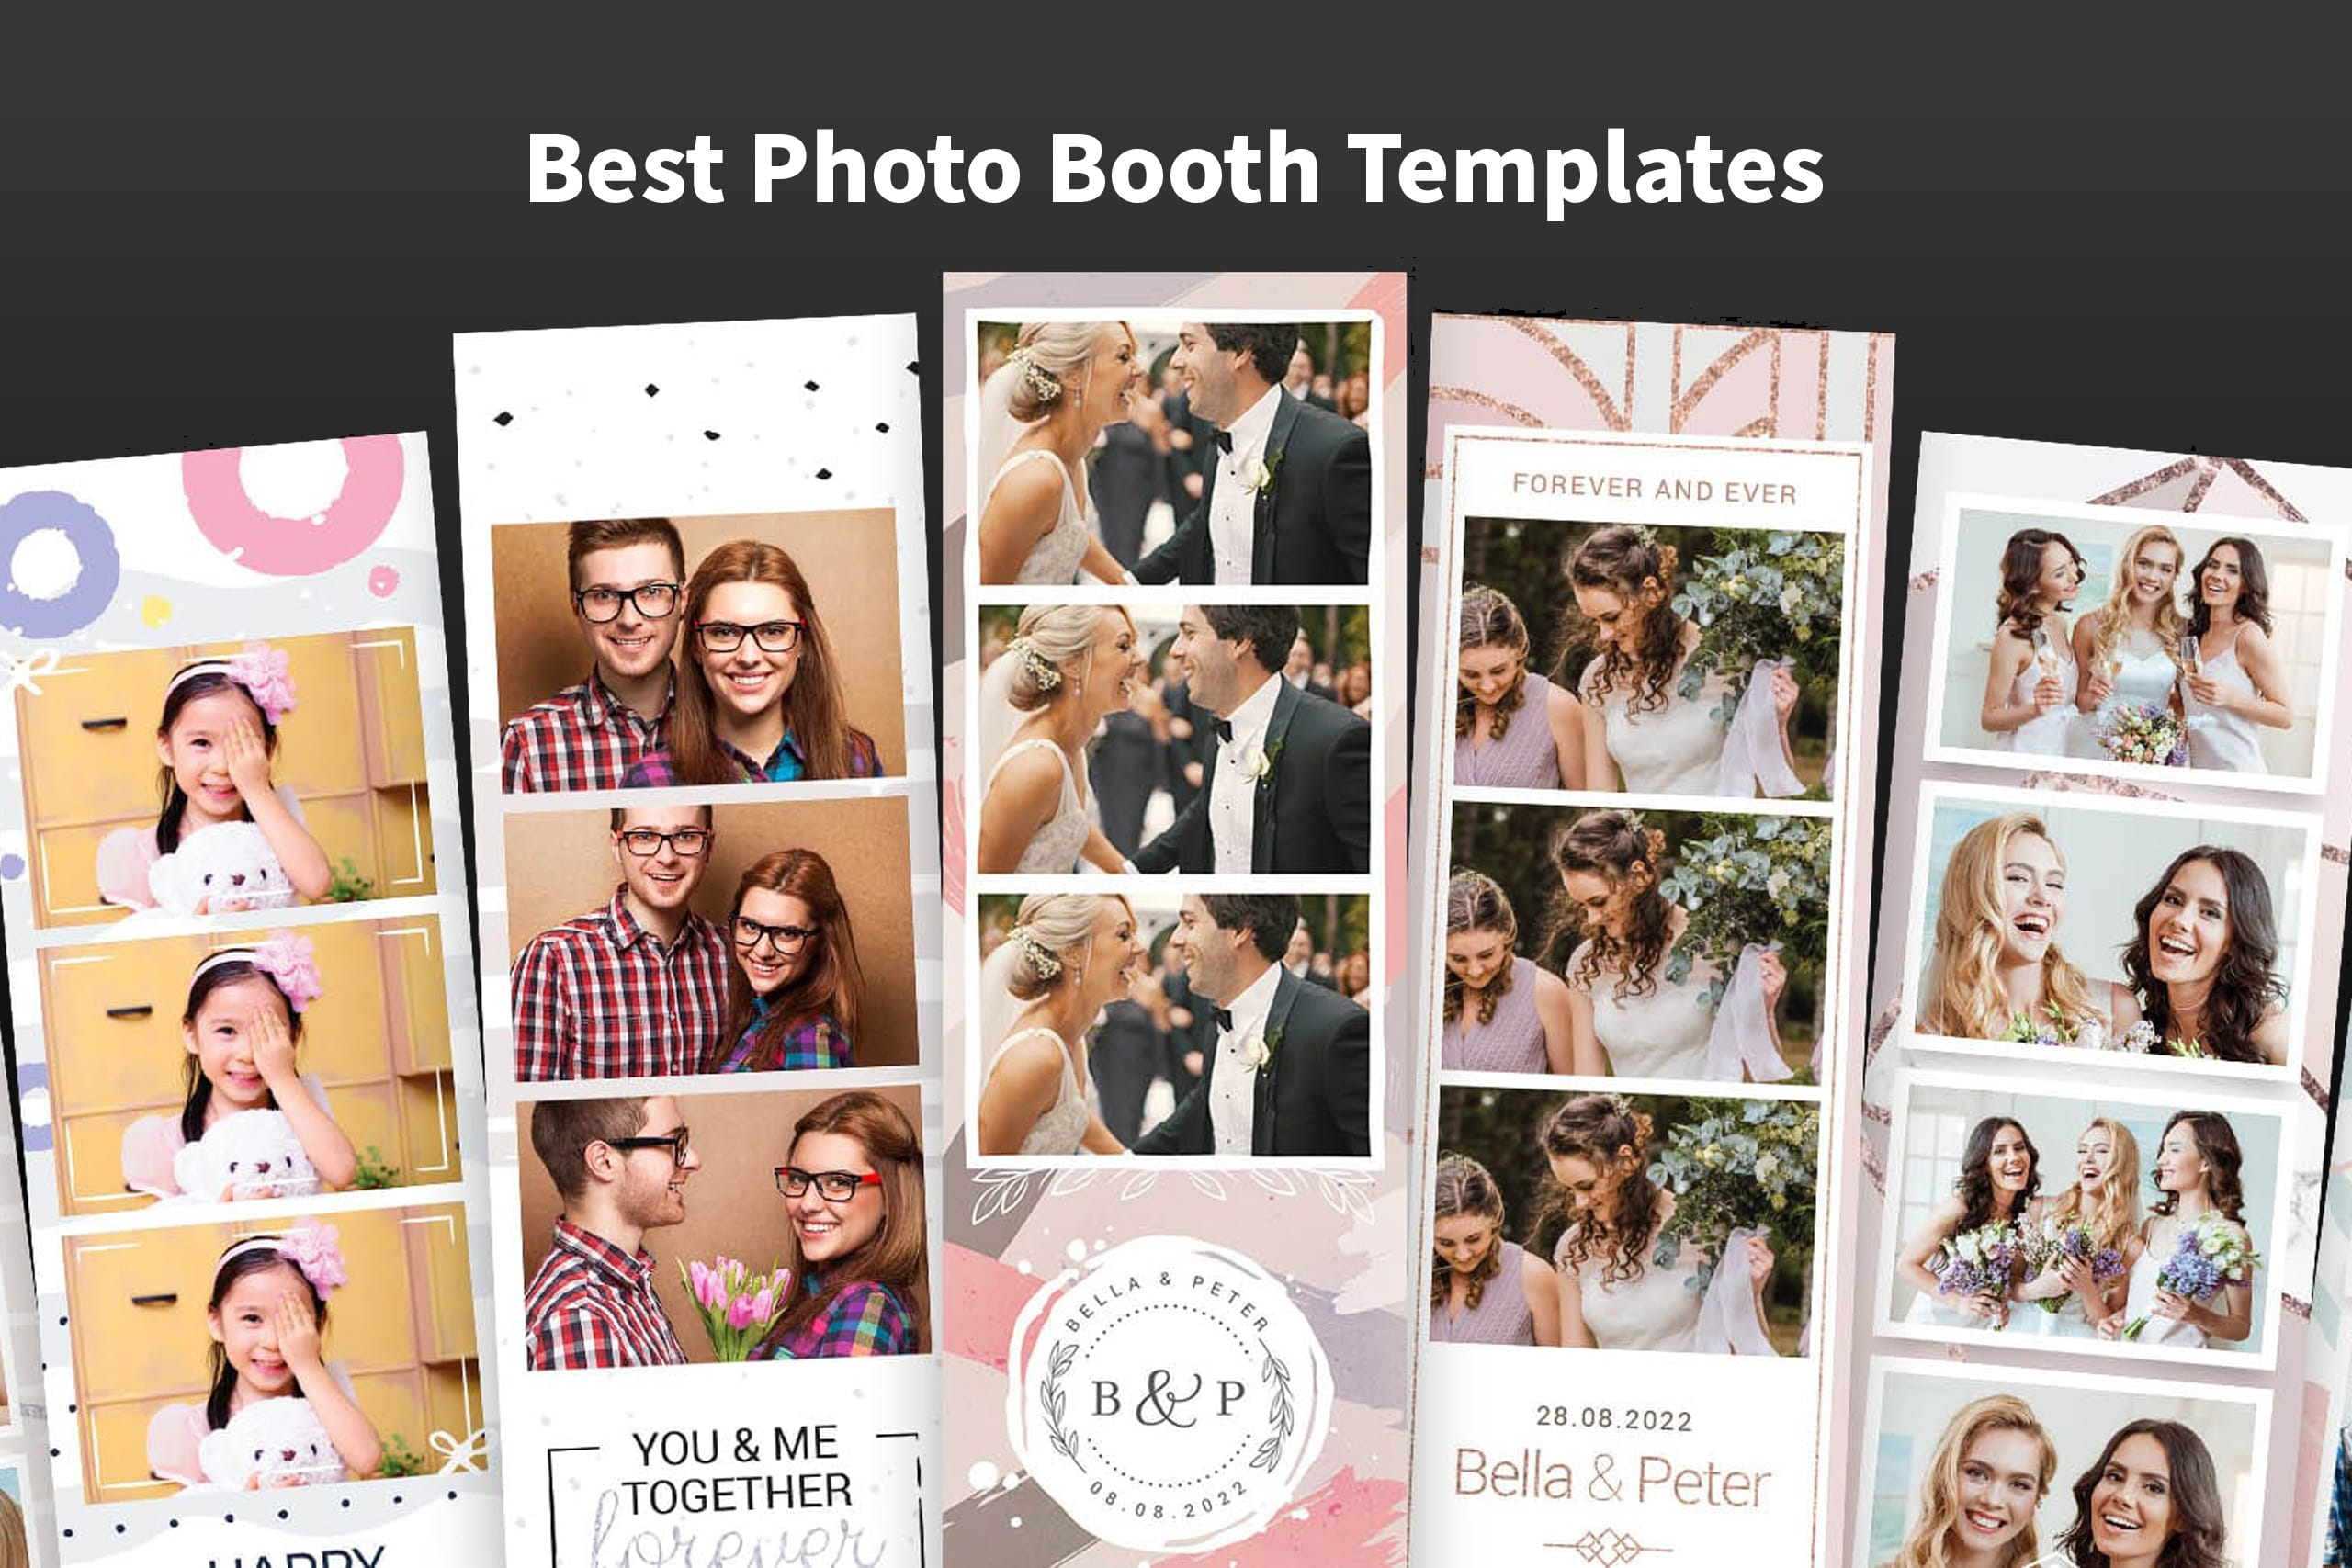 11 Impressive Templates For Wedding Photo Booths